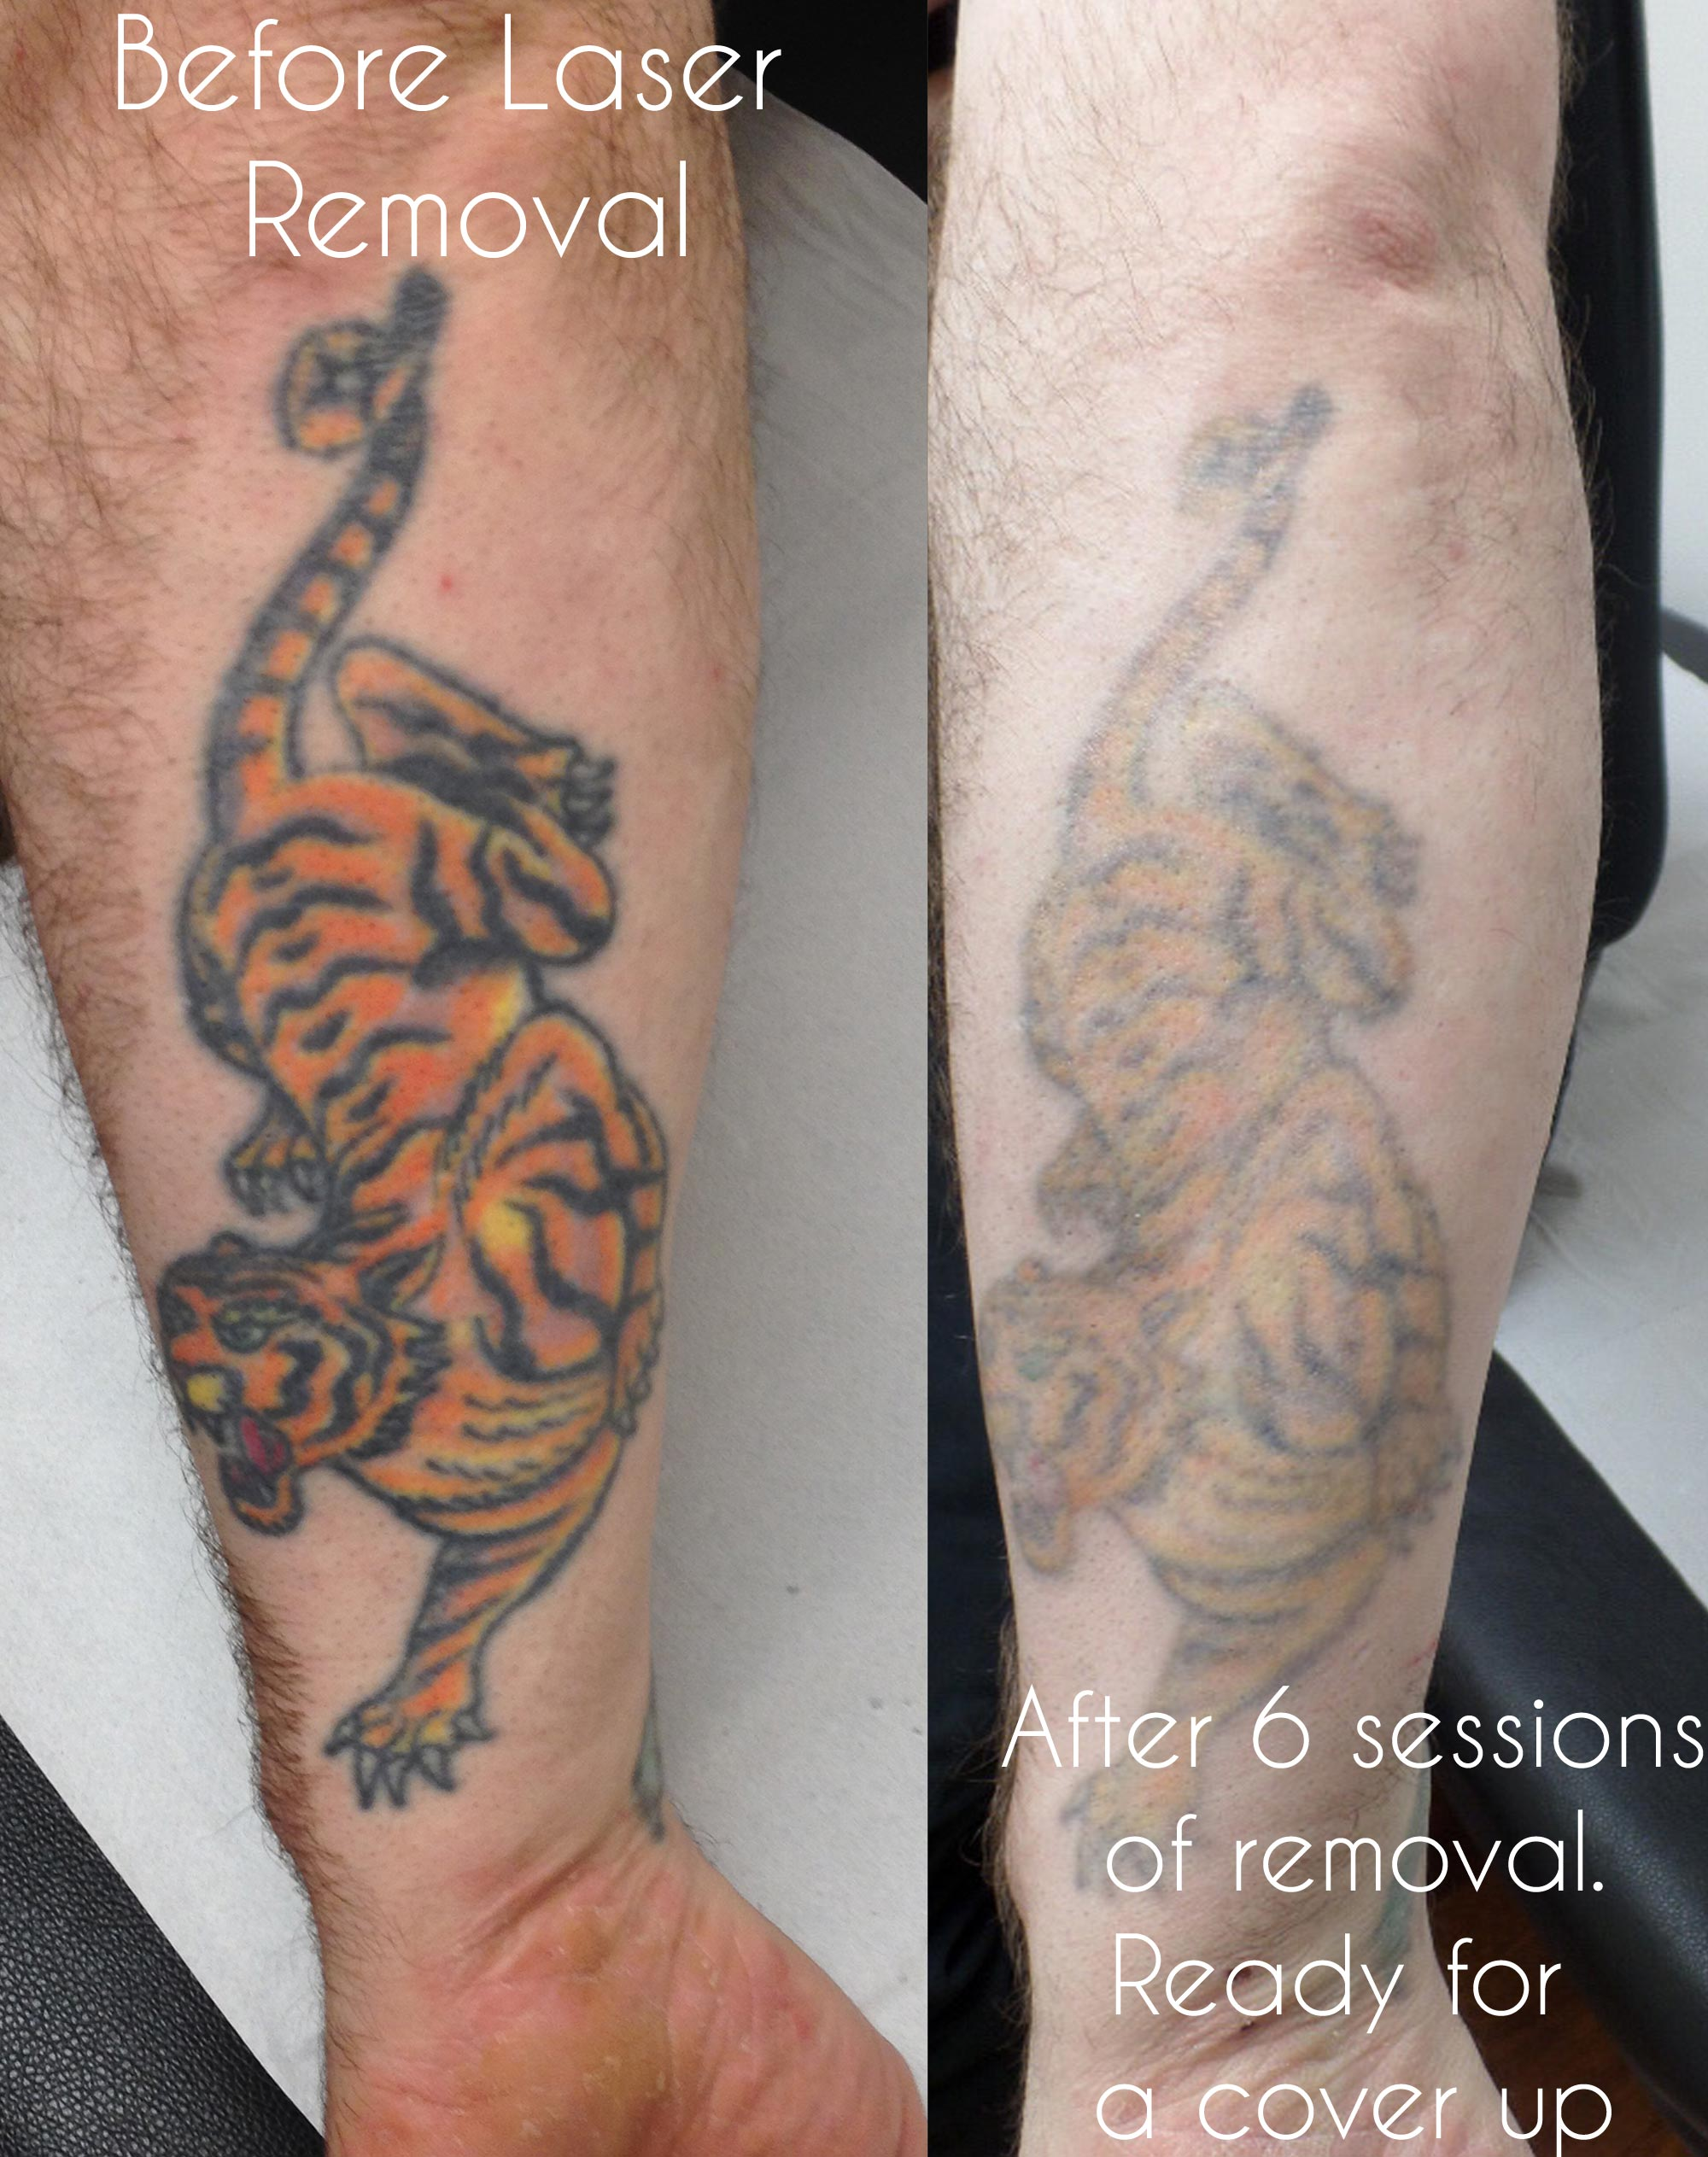 Laser tattoo removal - Birmingham UK.